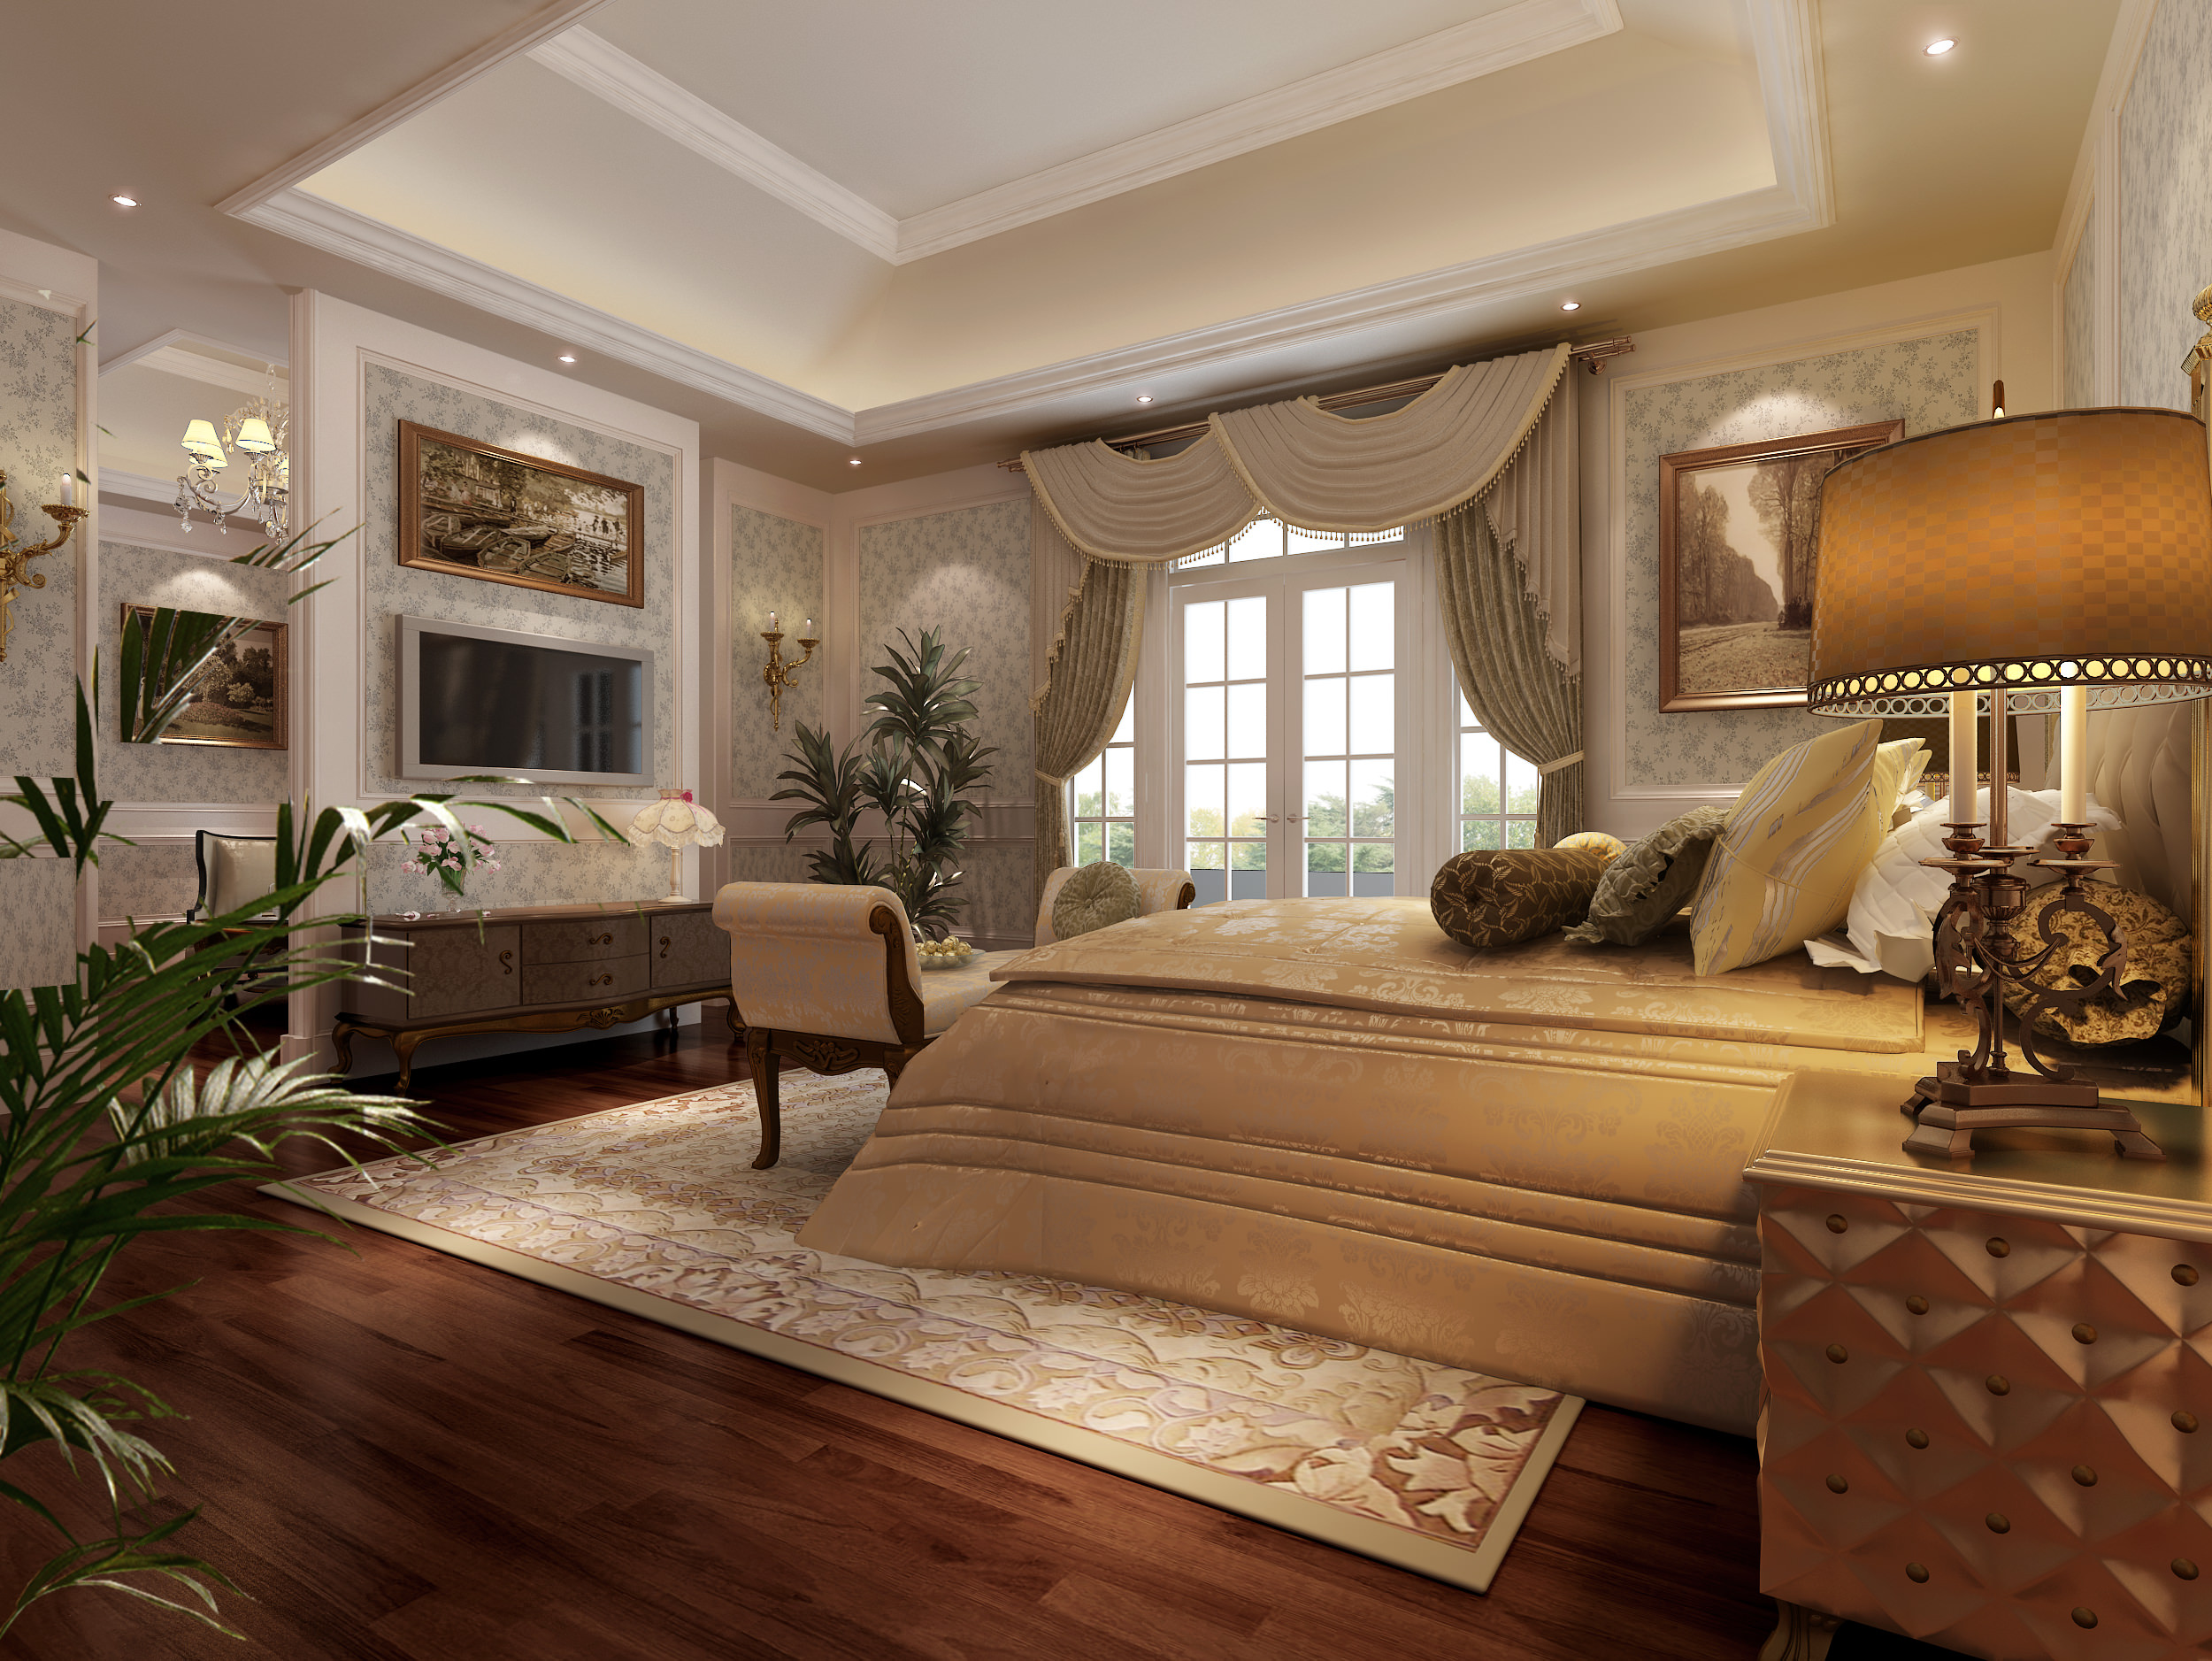 Model Bedroom living room and bedroom collection 3d model | cgtrader